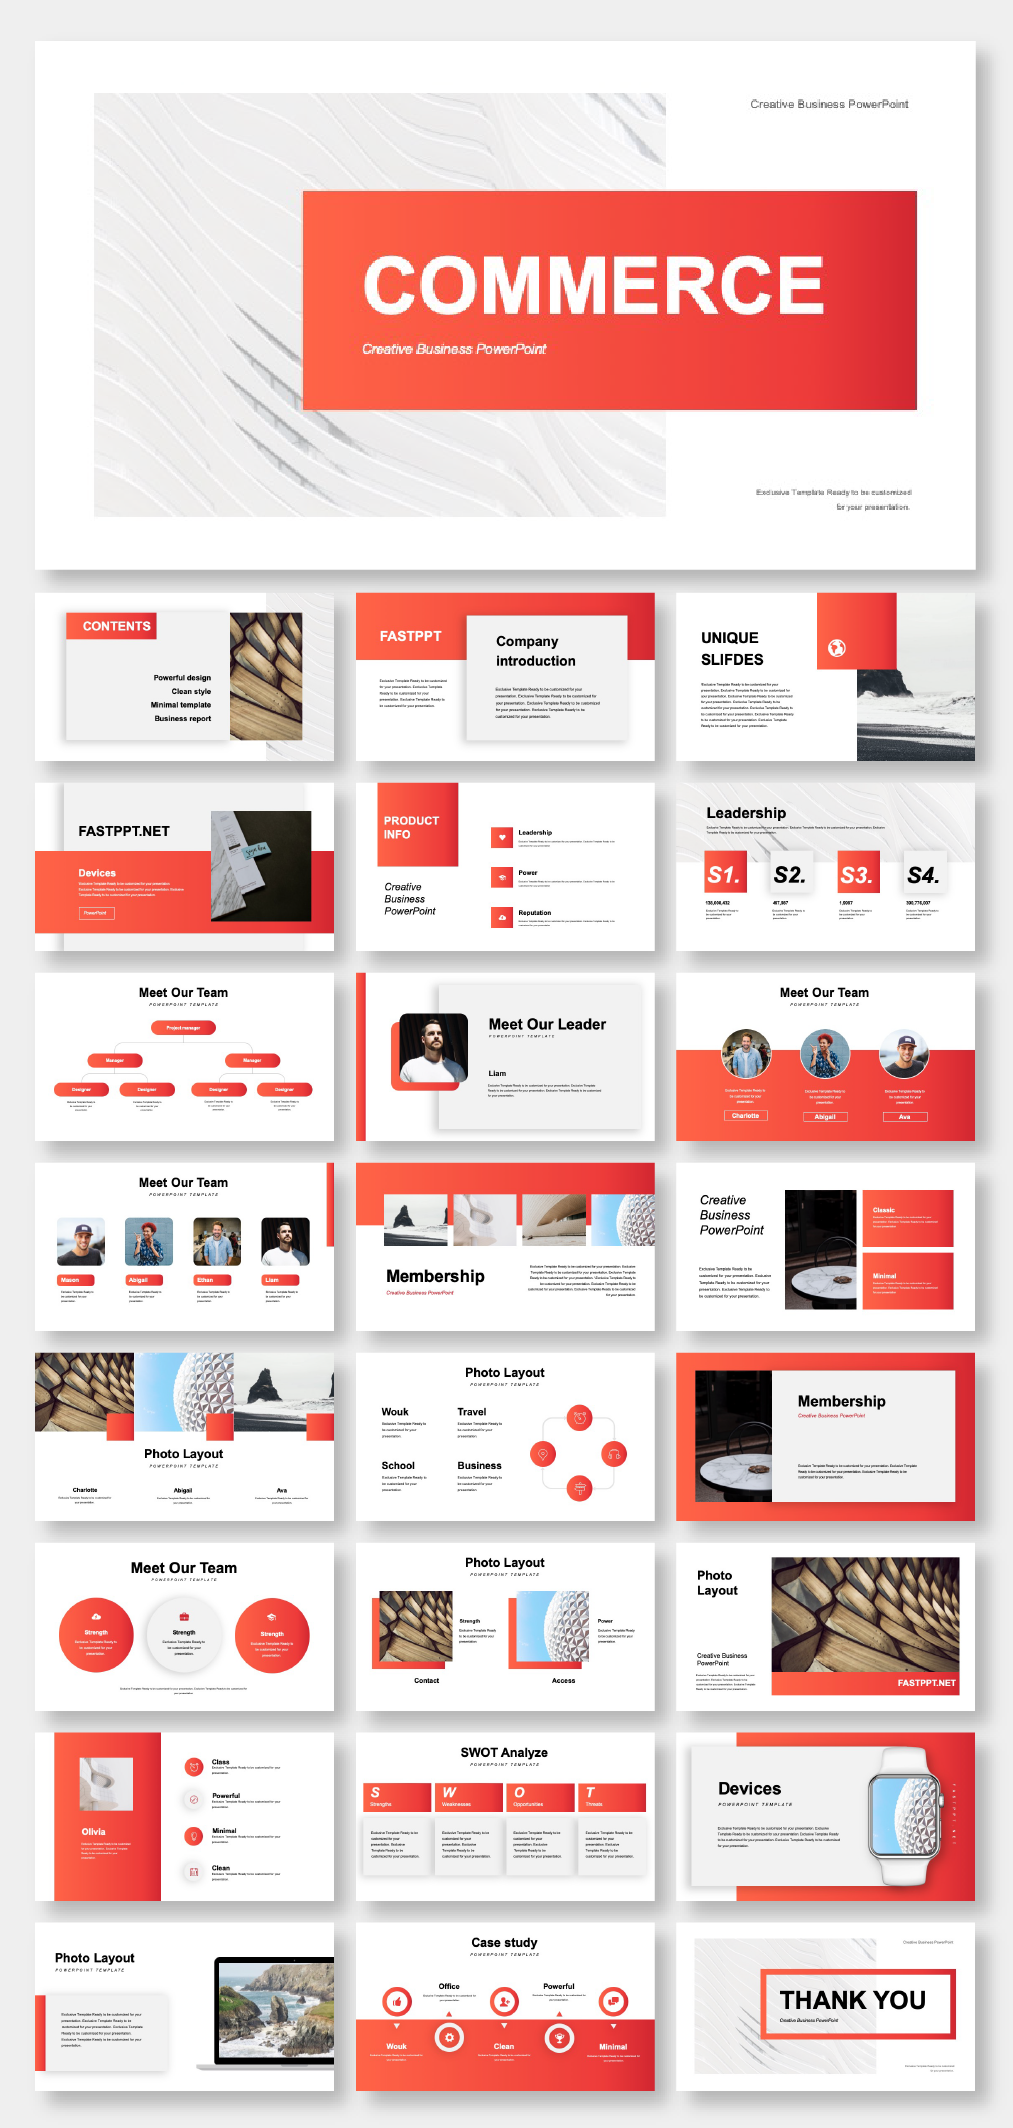 Company Team Introduction Presentation Template Original And High Quality Powerpoint Templates Presentation Templates Powerpoint Presentation Design Powerpoint Design Templates